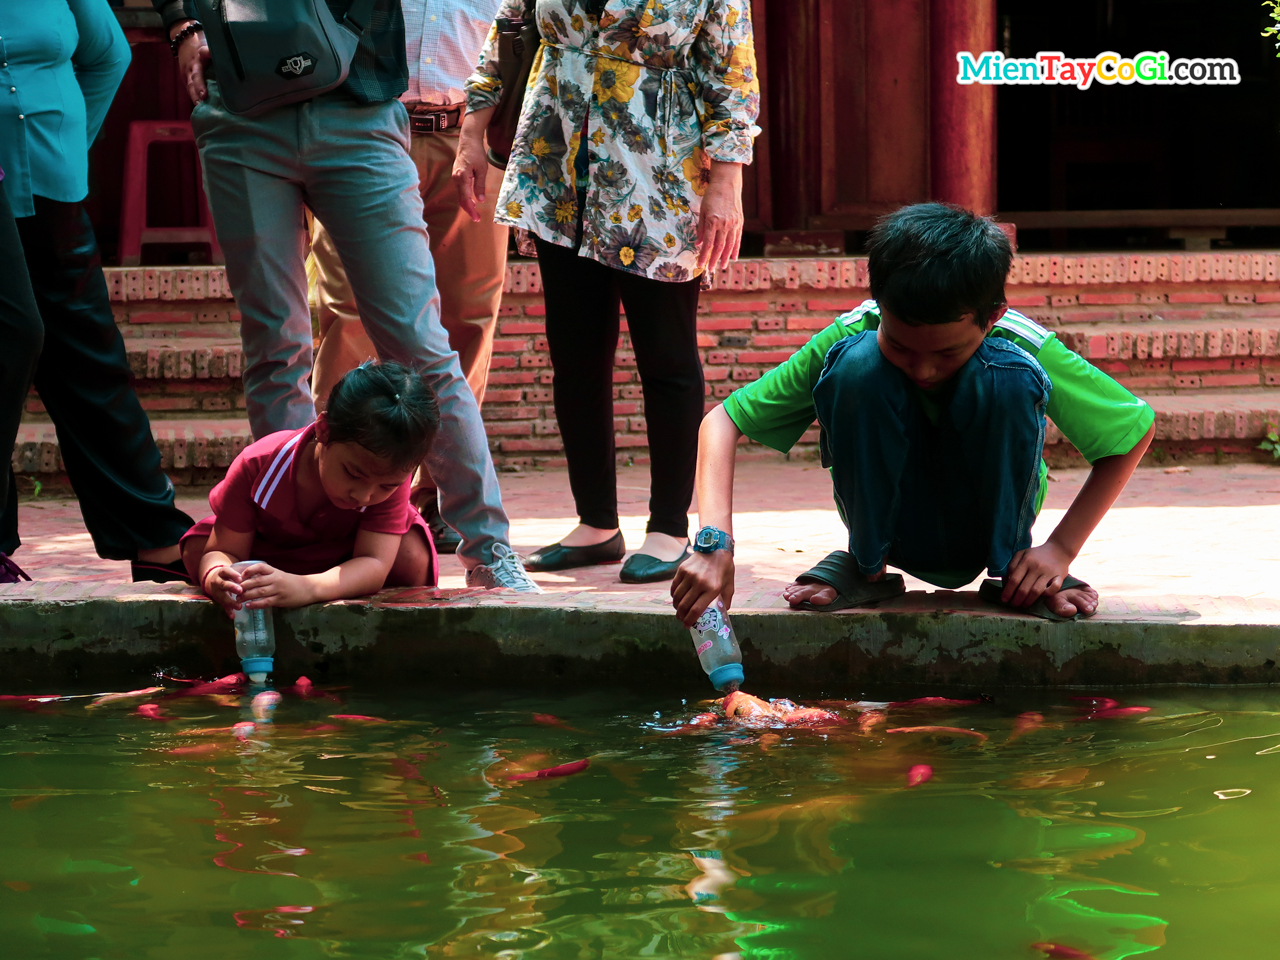 The children are attentively feeding the fish with a bottle